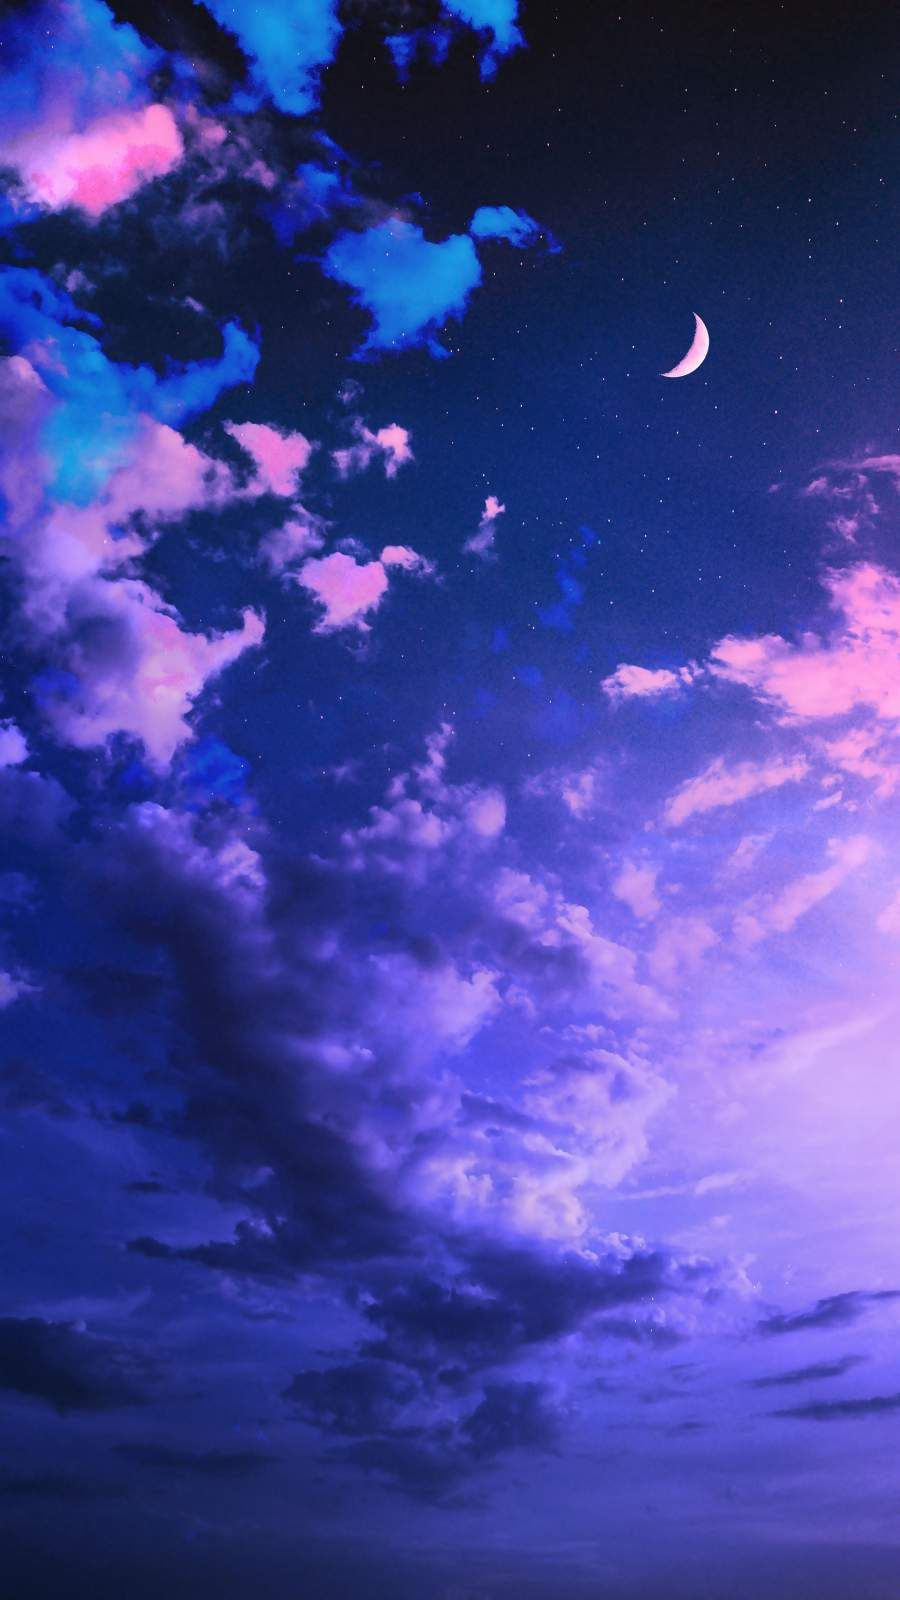 Cloudy Sky IPhone Wallpaper - IPhone Wallpapers